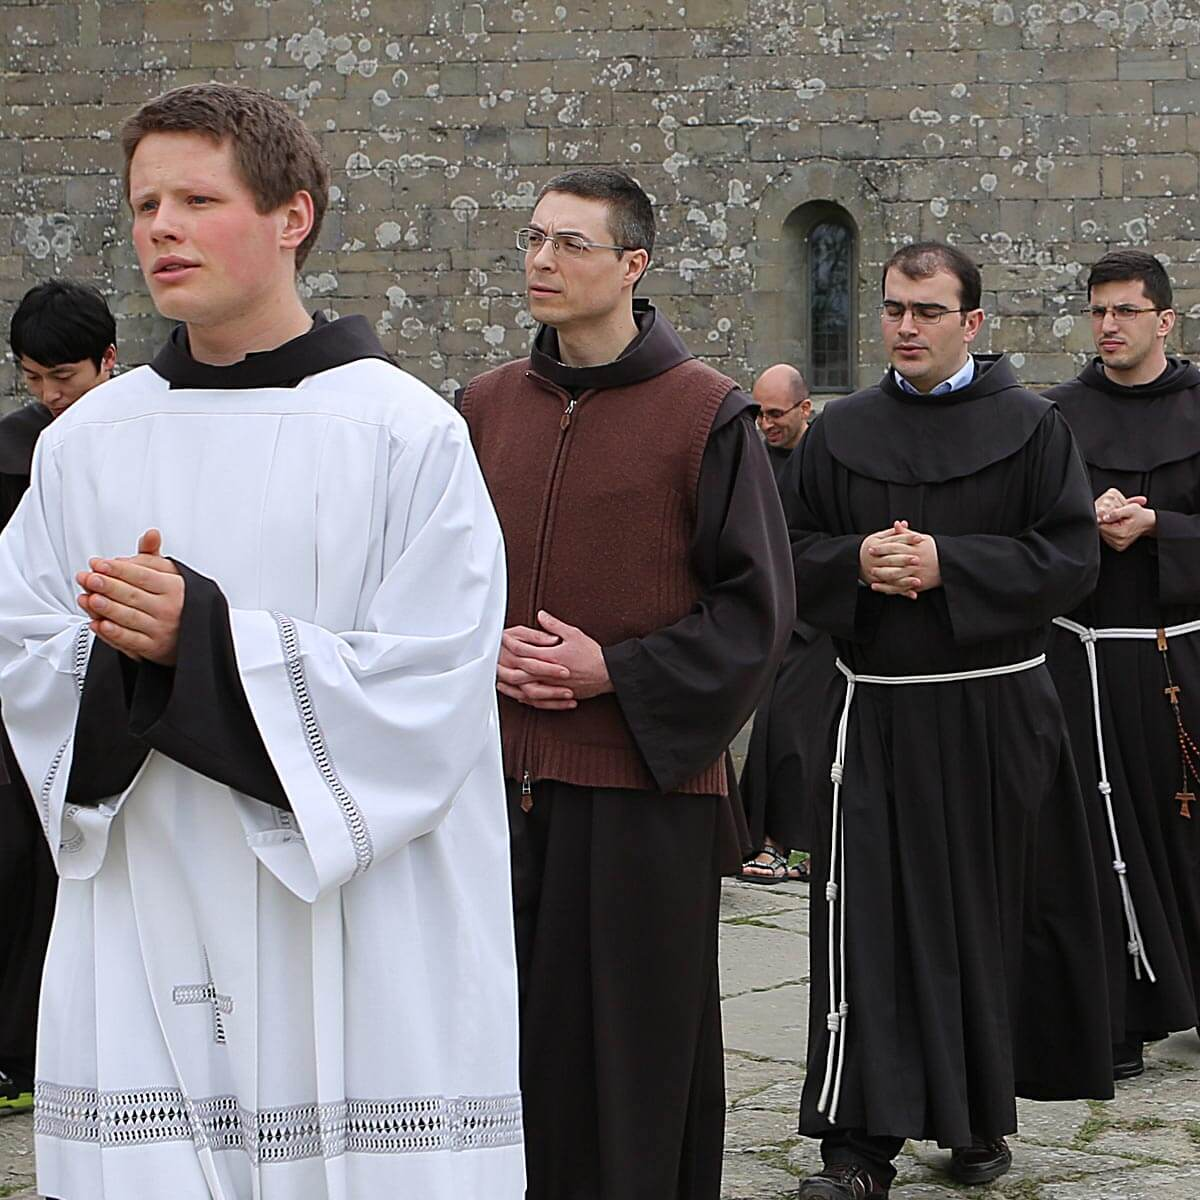 About the Franciscan Friars - Ordo Fratrum Minorum